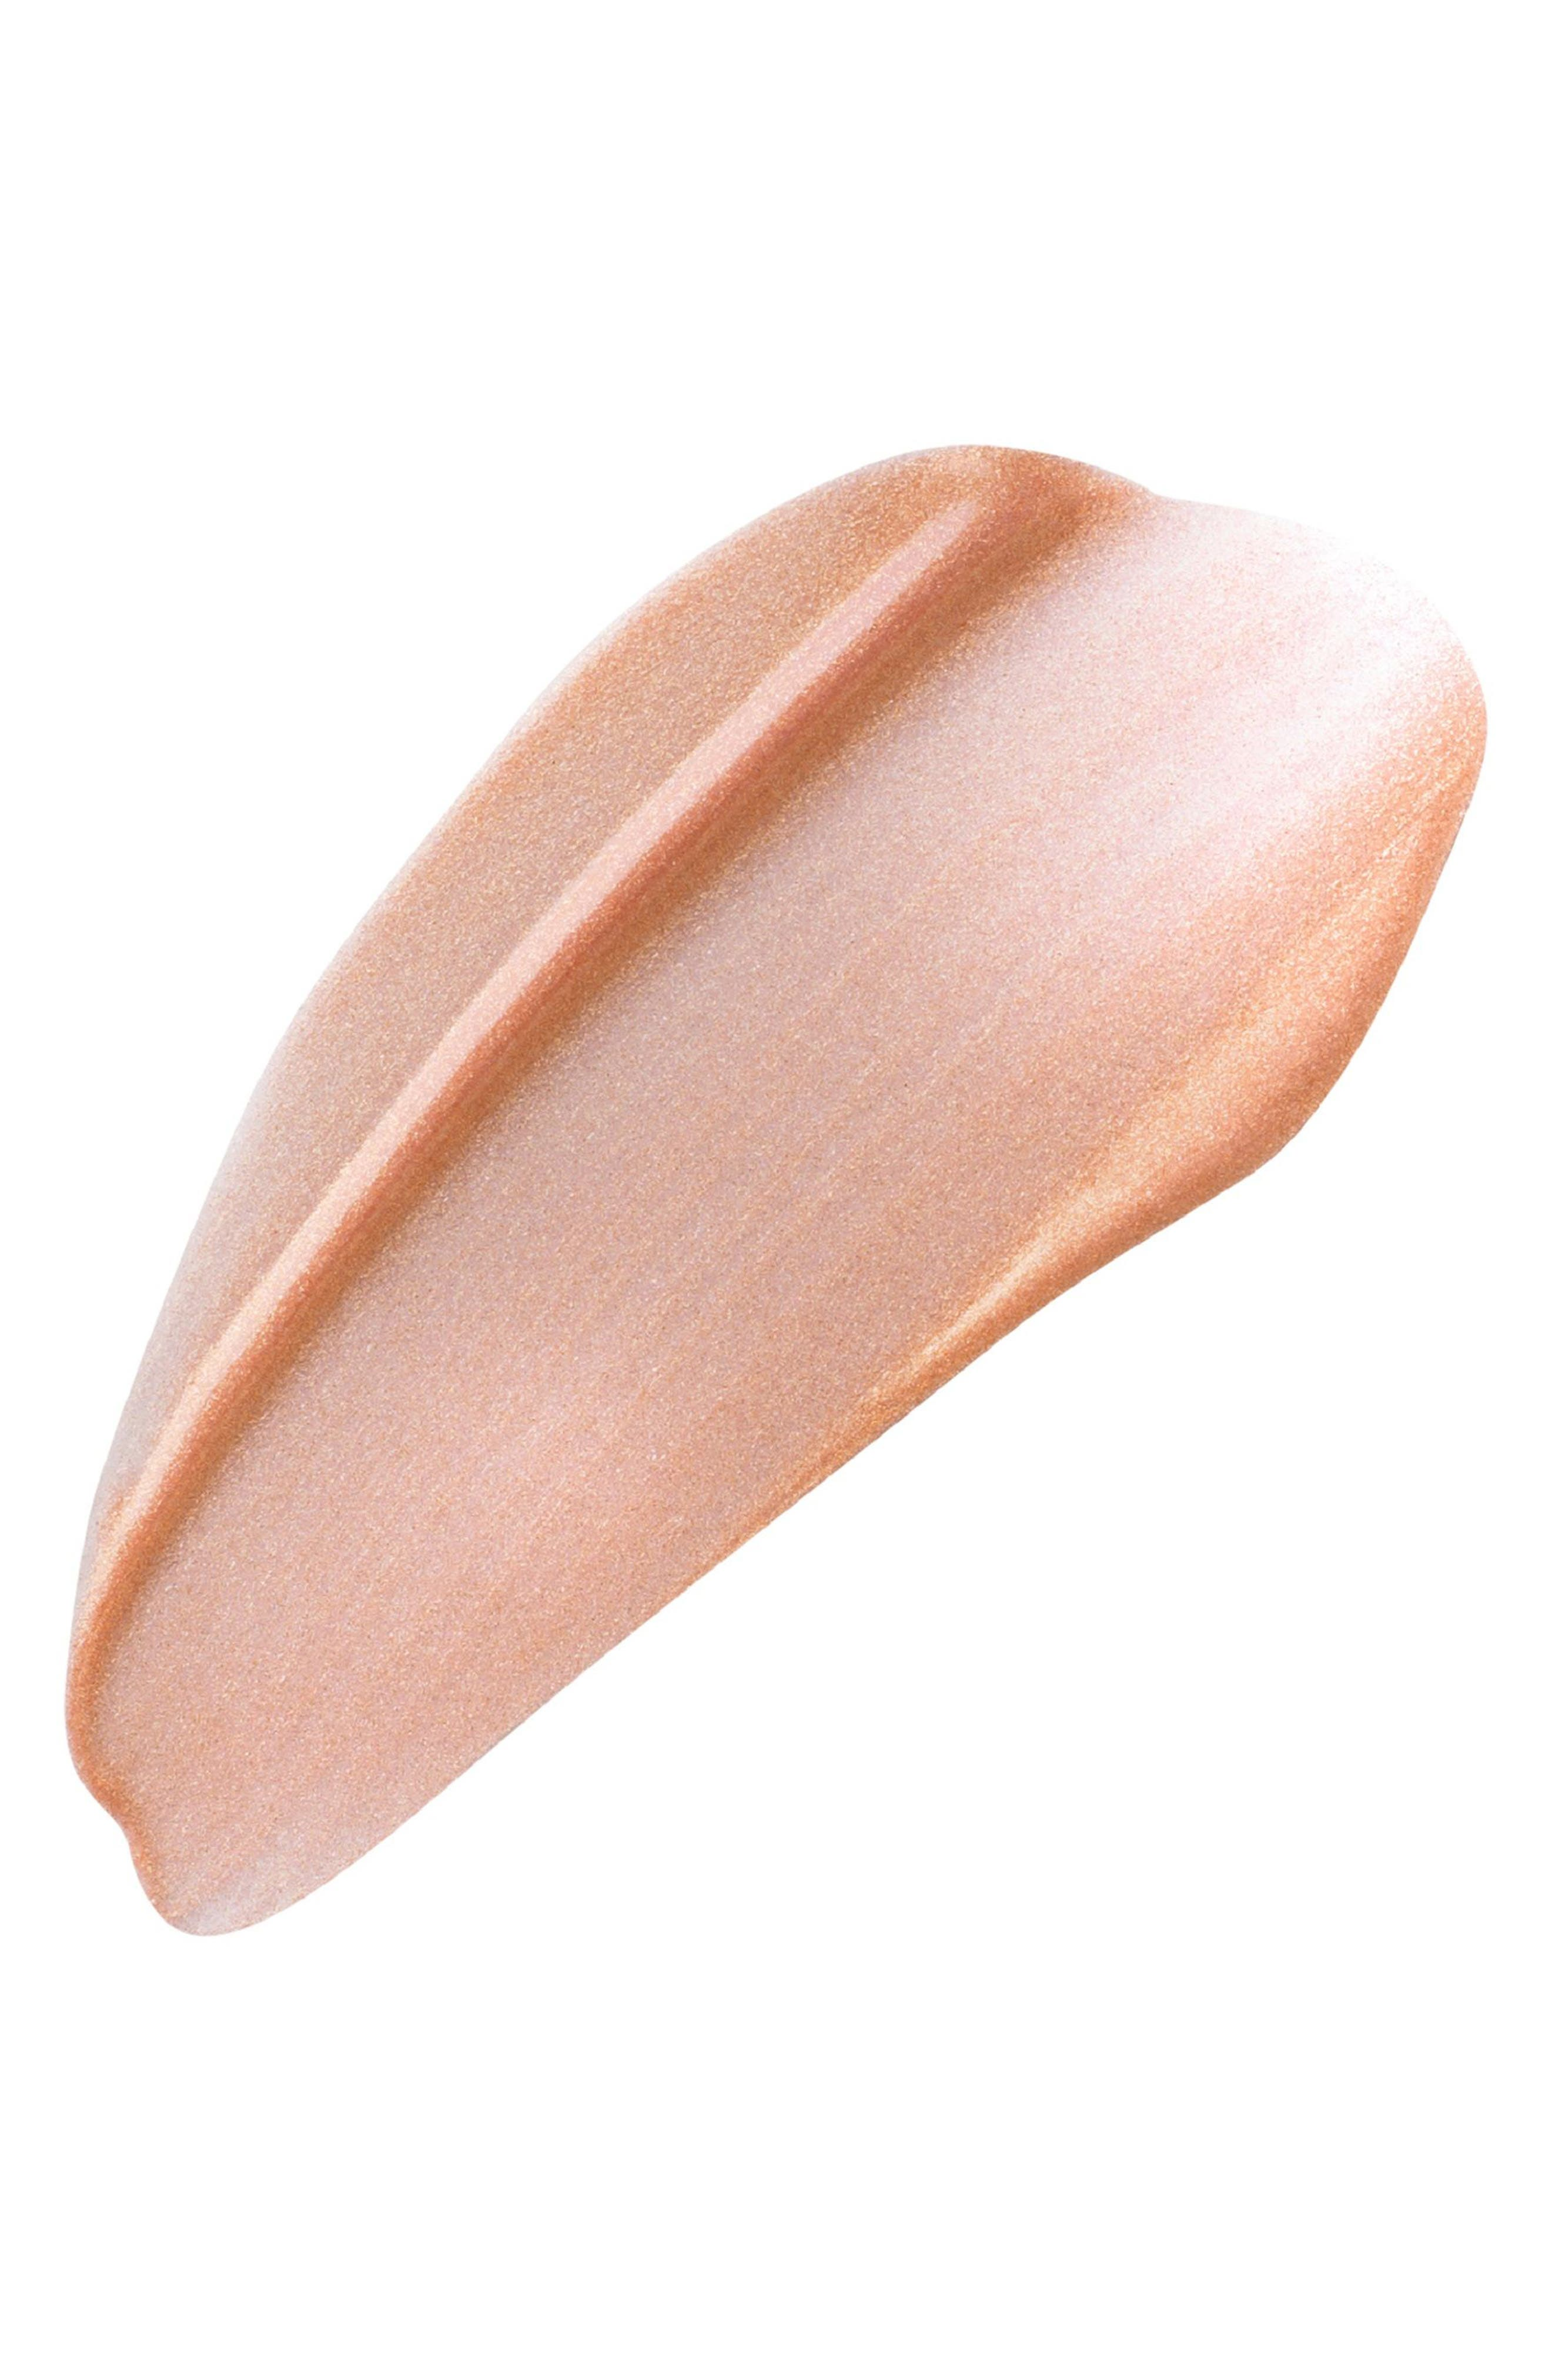 Benefit Girl Meets Pearl Liquid Highlighter,                             Alternate thumbnail 2, color,                             Pink